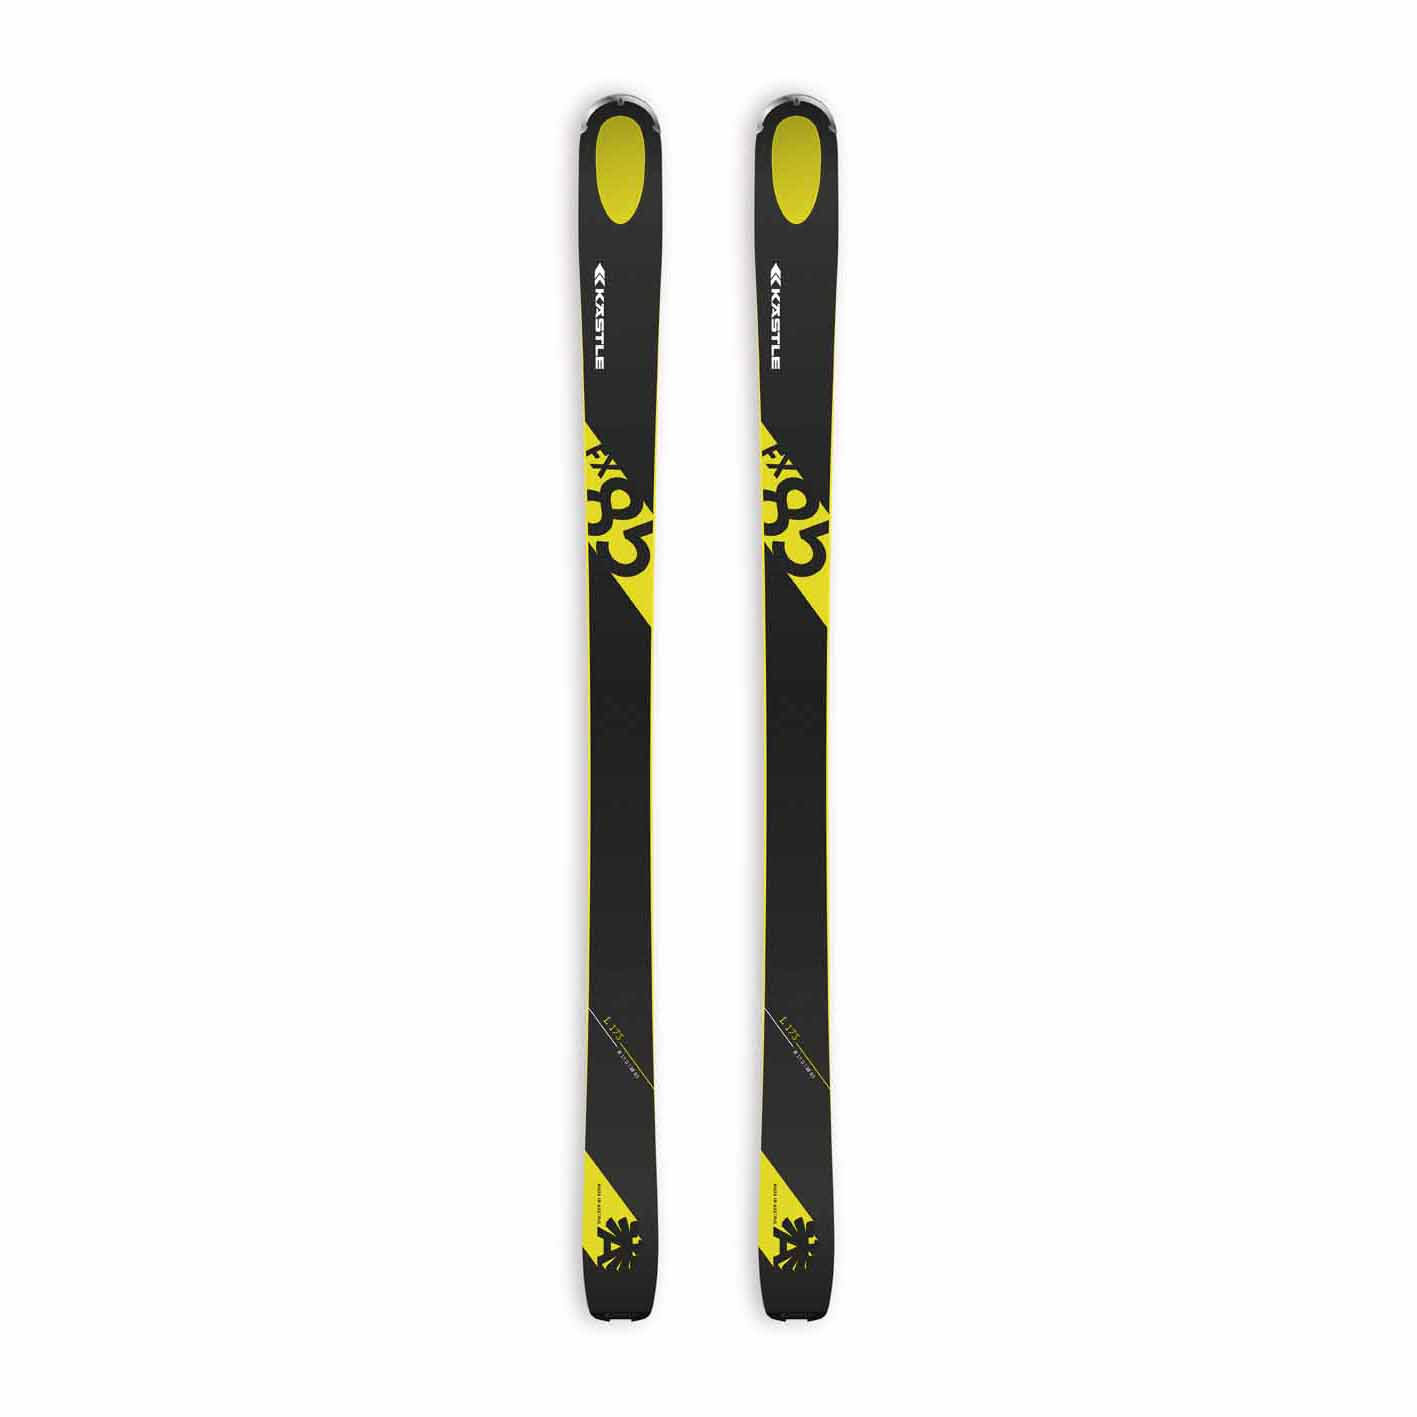 2017-18 Kastle FX85 Ski With K13 Attack2 GW Binding